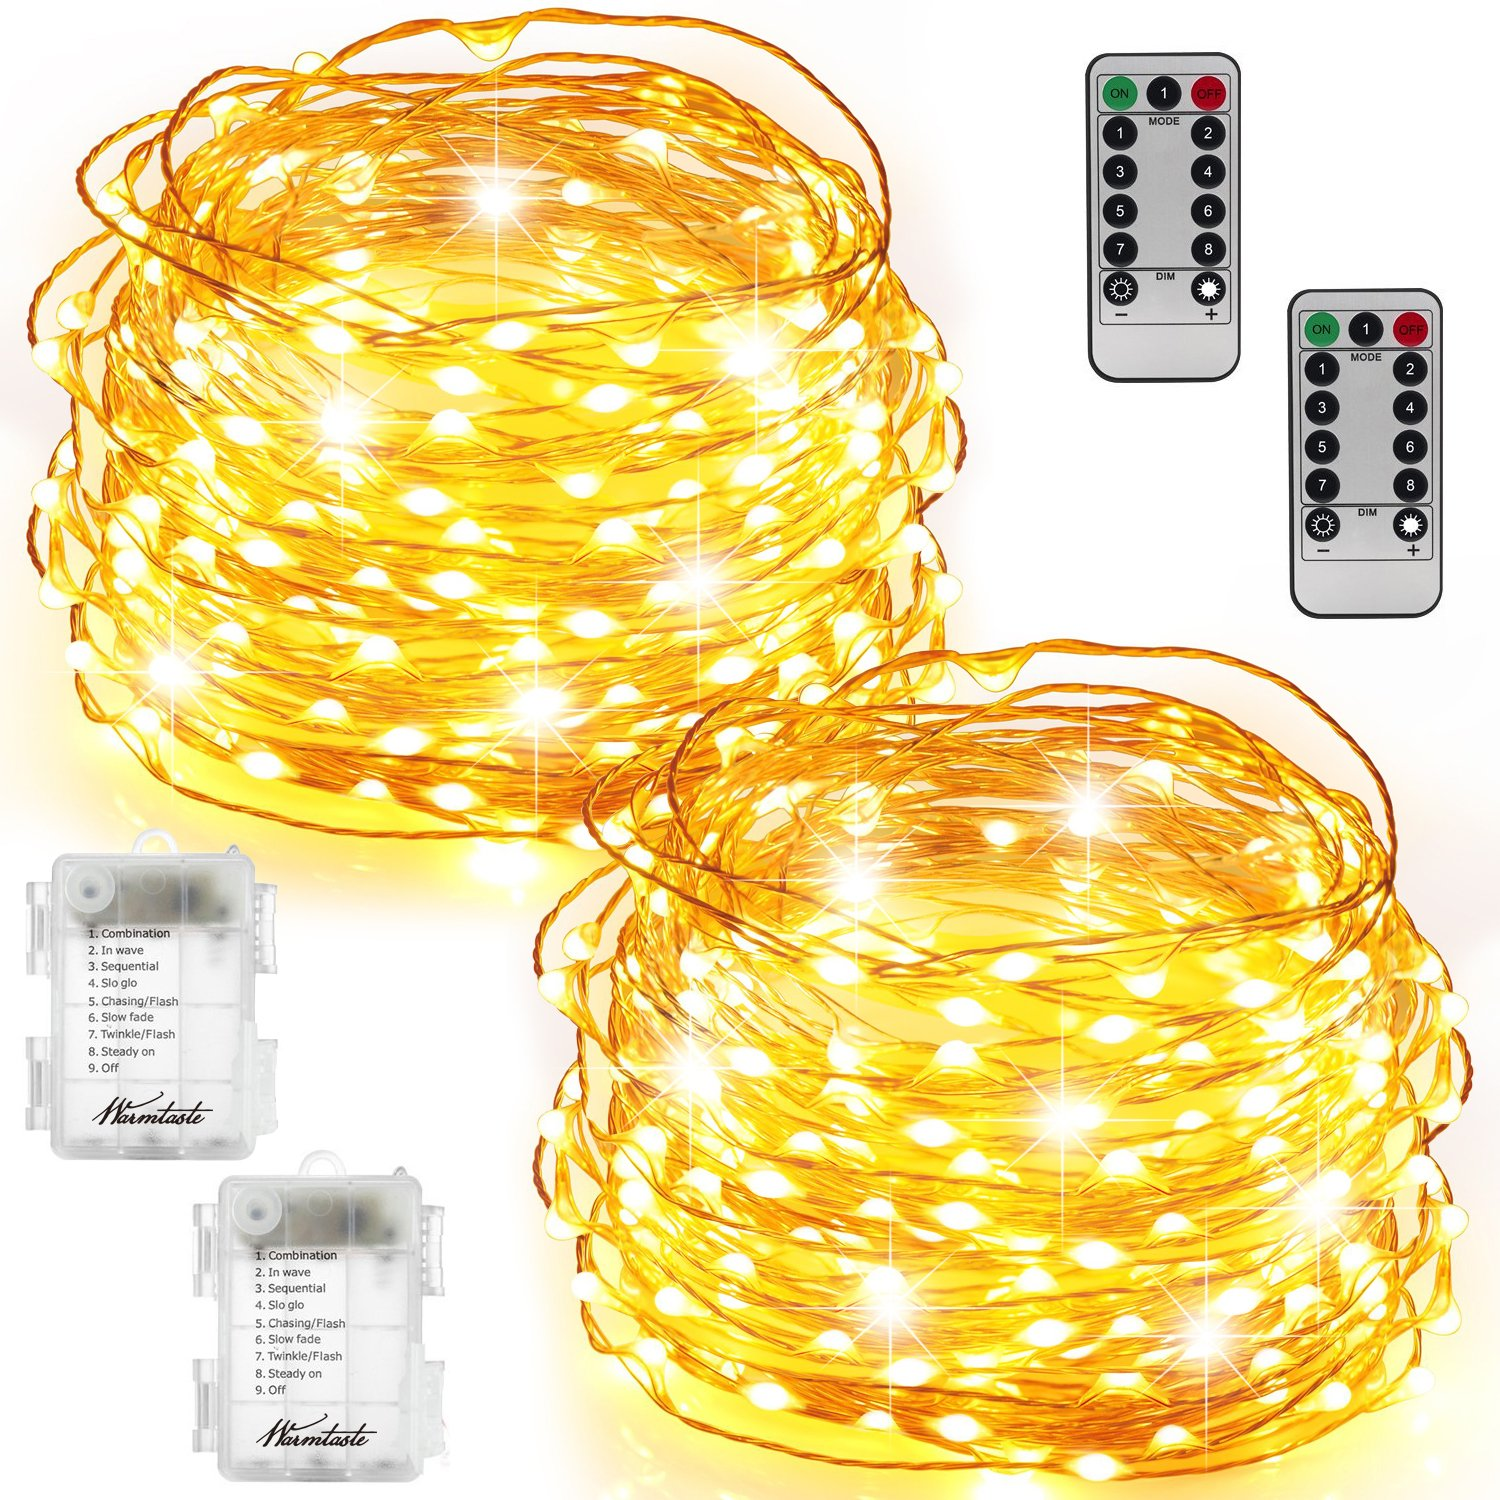 String Lights 2 Set 100 LED Christmas Fairy Lights with Remote Control(Timer),Warmtaste 33ft String Waterproof Copper Wire, Decor Rope Lights for Bedroom,Patio,Garden,Parties,Wedding(Warm White ) by Warmtaste